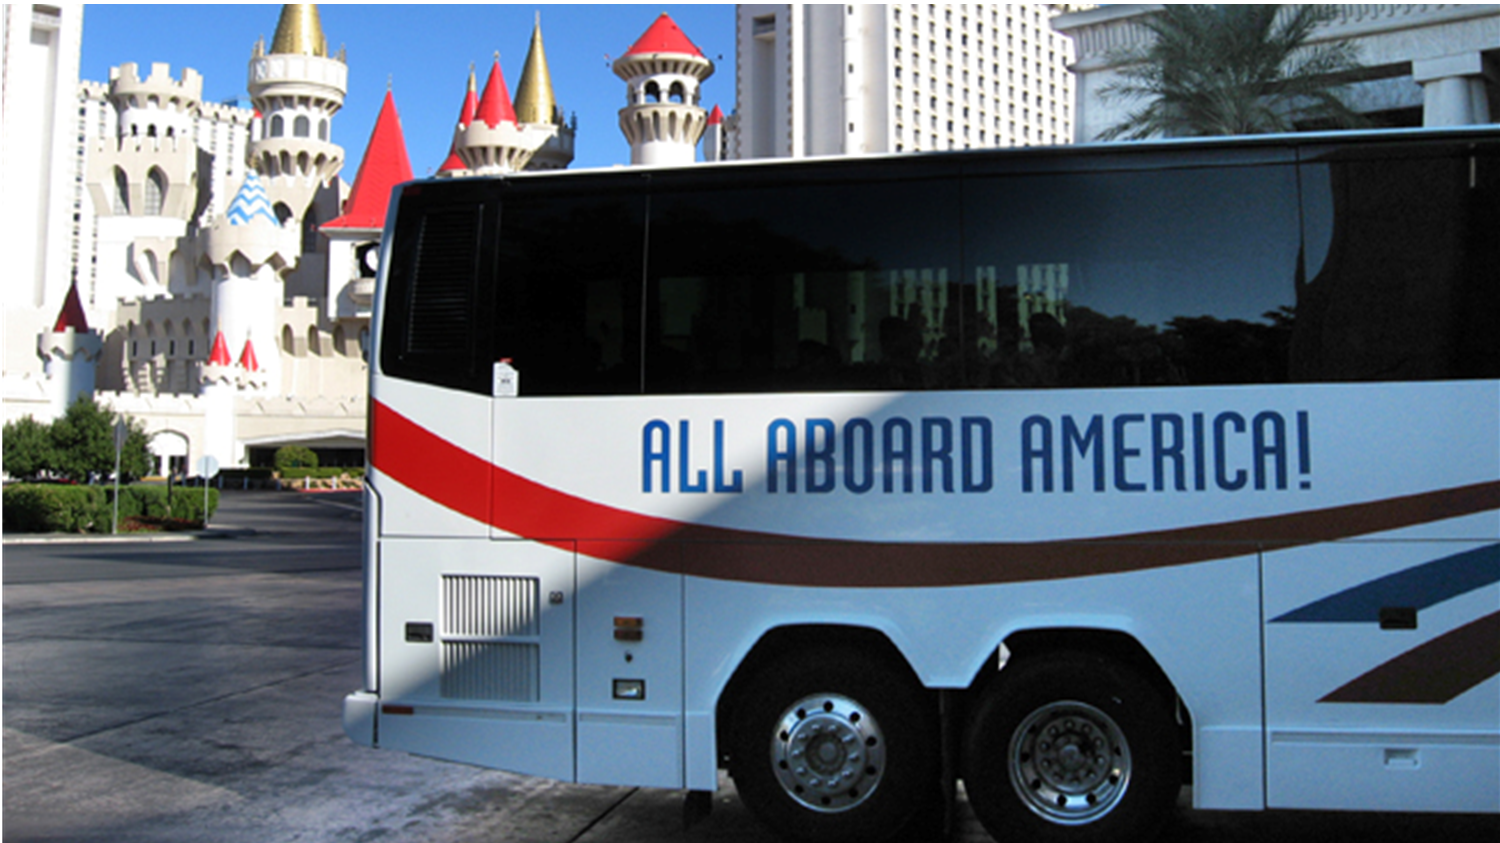 Triangle Capital Invests in All Aboard America